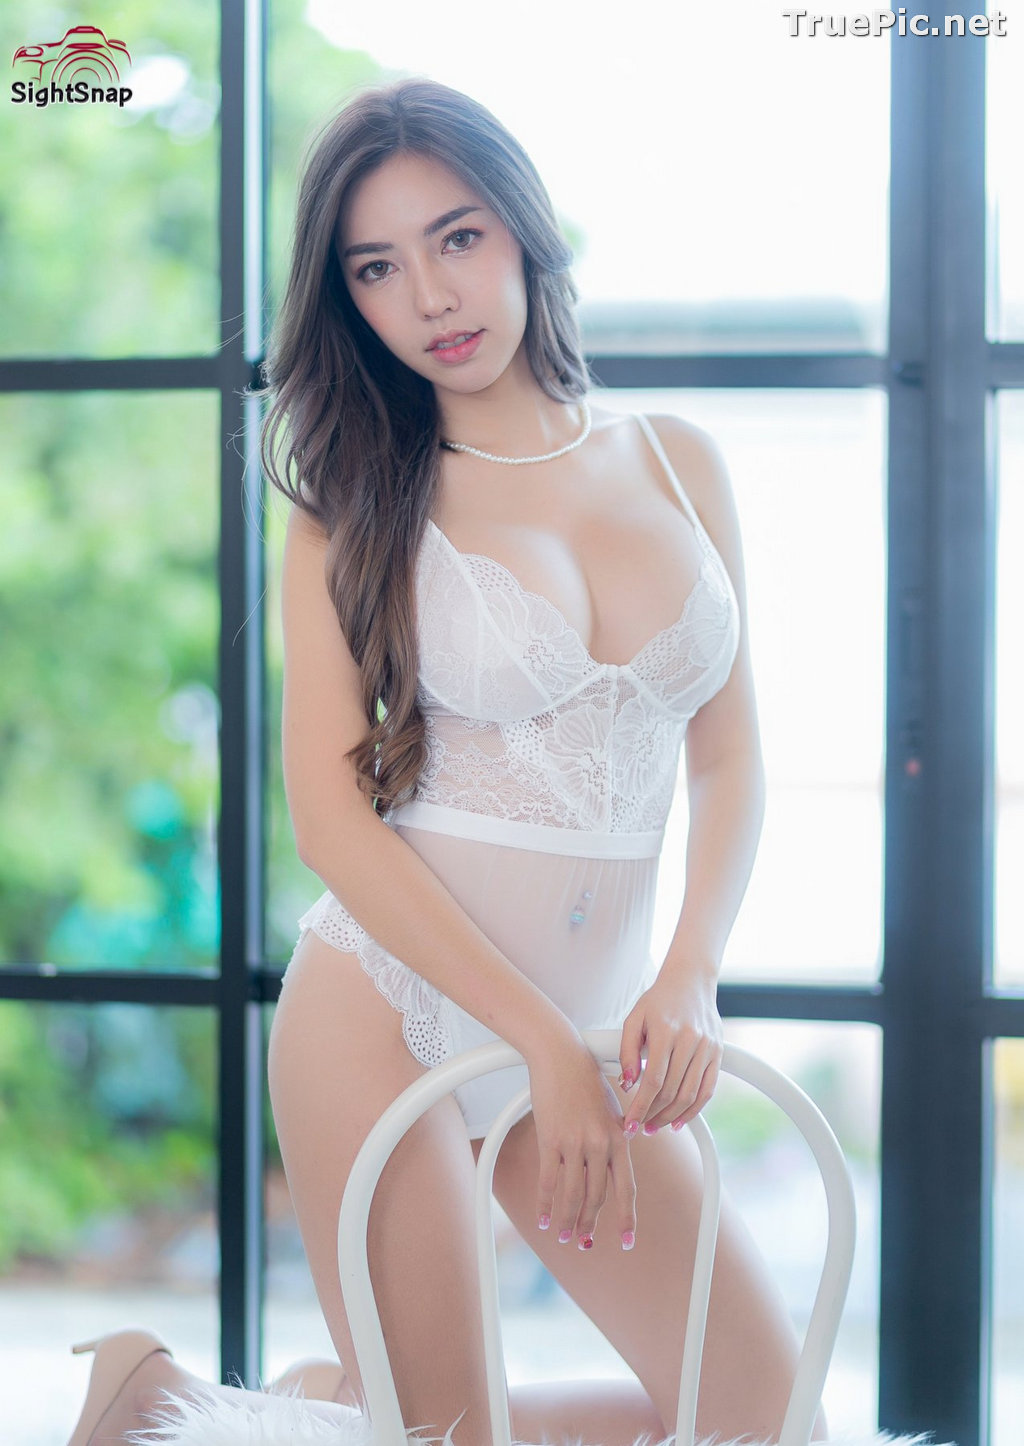 Image Thailand Sexy Model – Champ Phawida - Transparent White Lingerie - TruePic.net - Picture-4